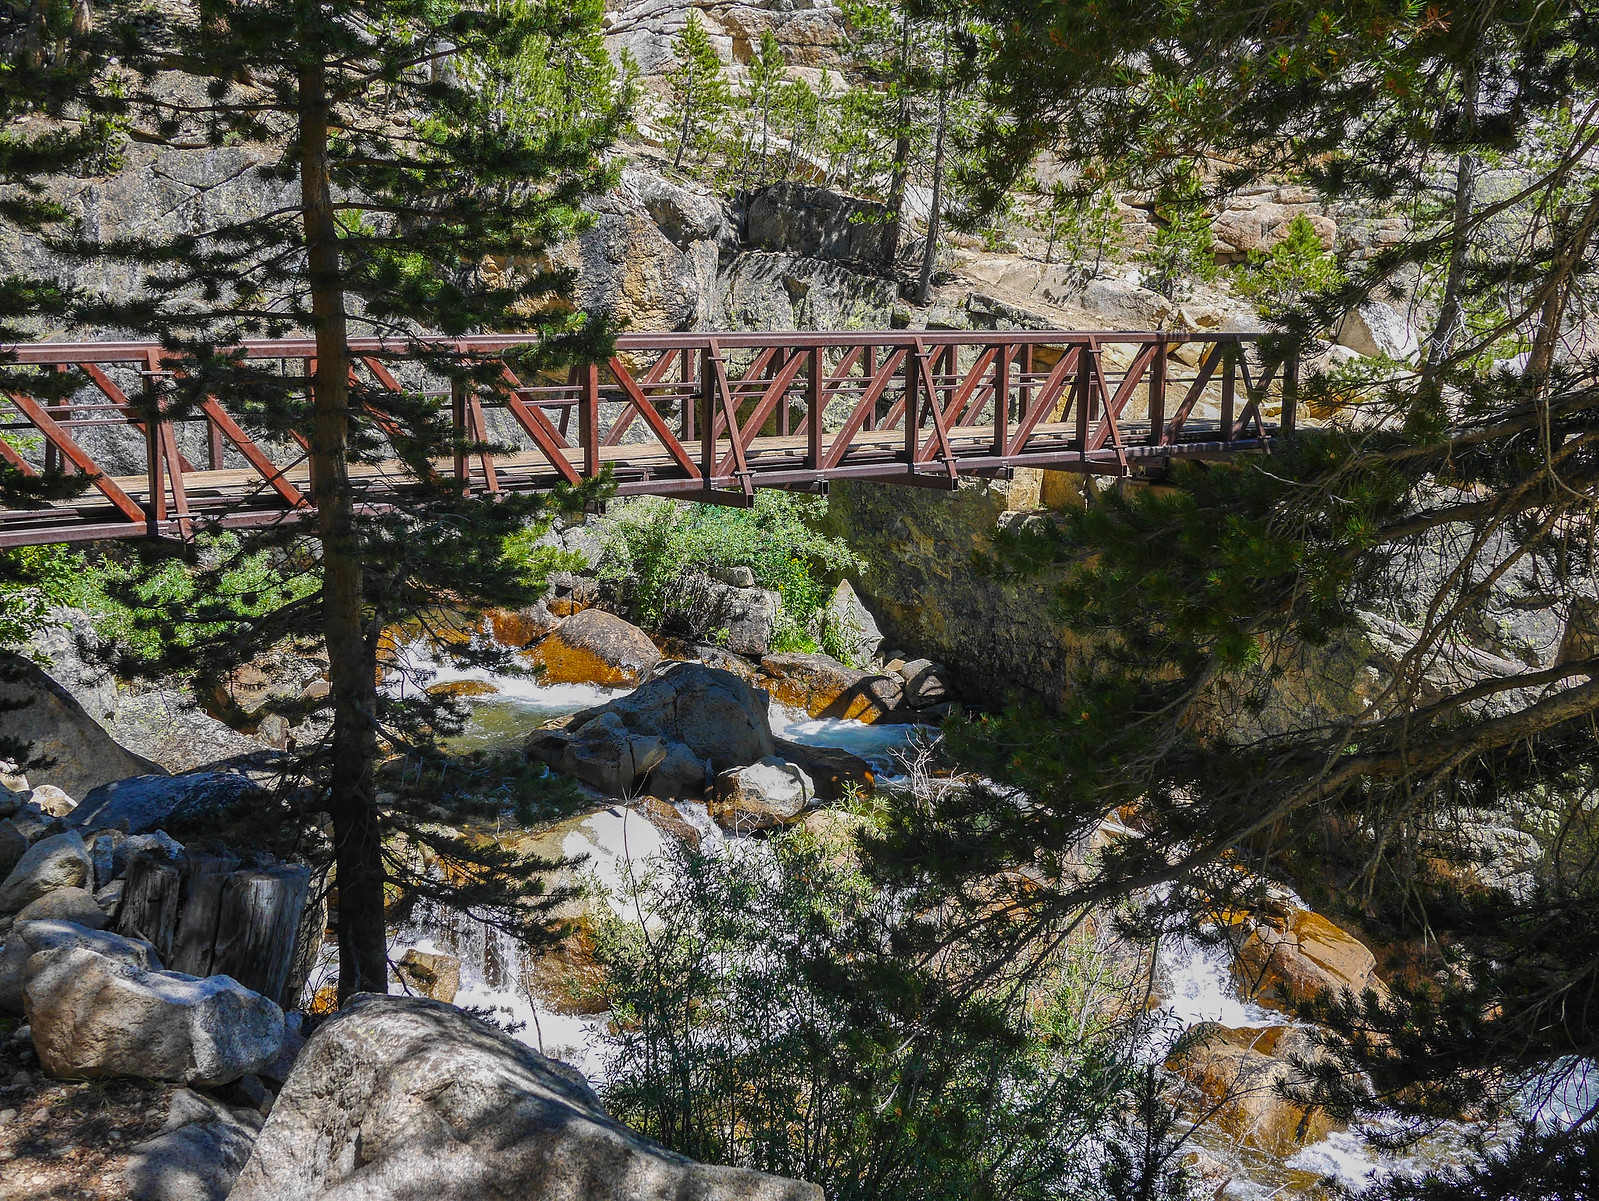 Bridge on JMT over Fish Creek